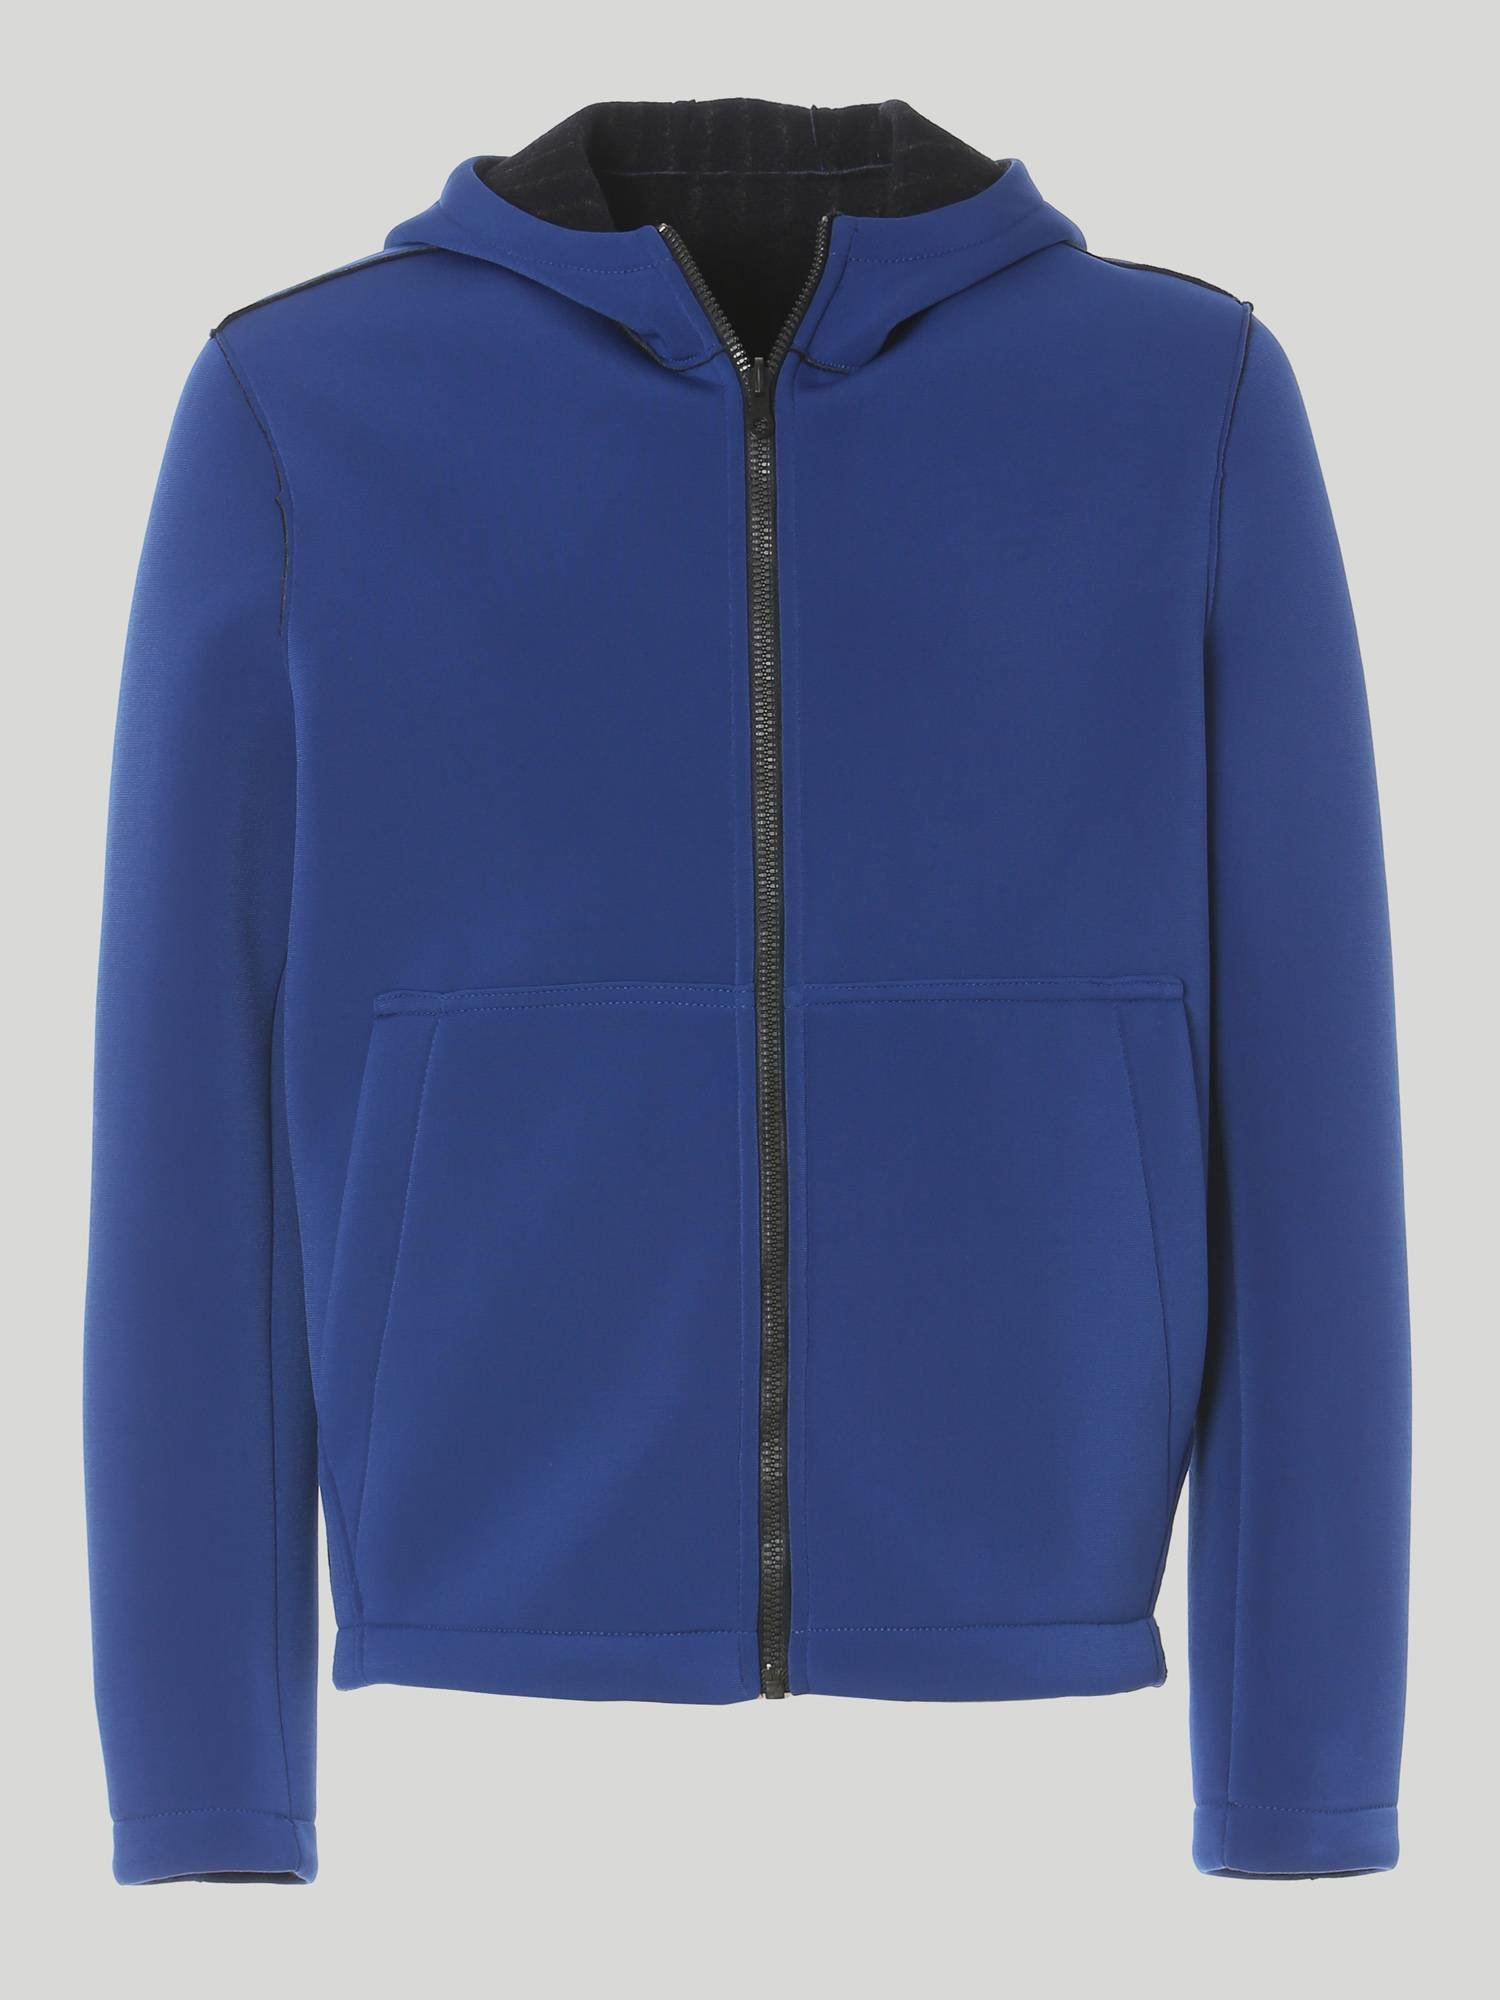 JACKET DRABBER - Navy Blue